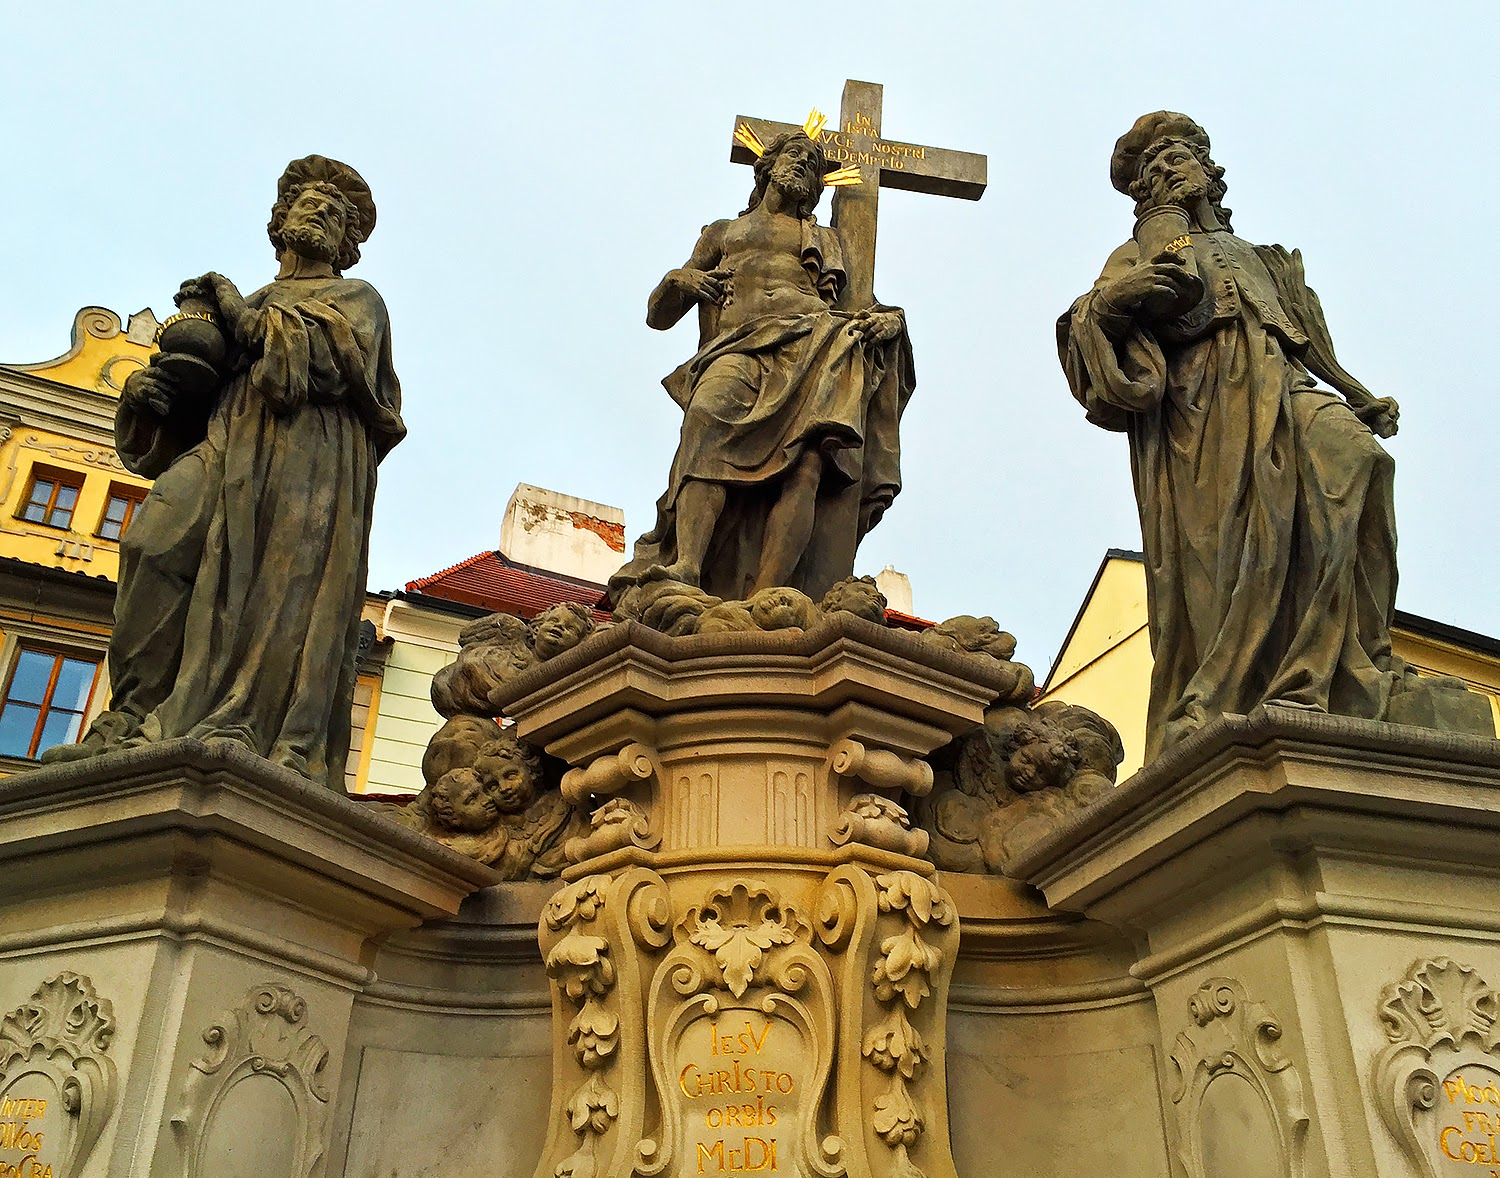 Baroque statues along charles bridge